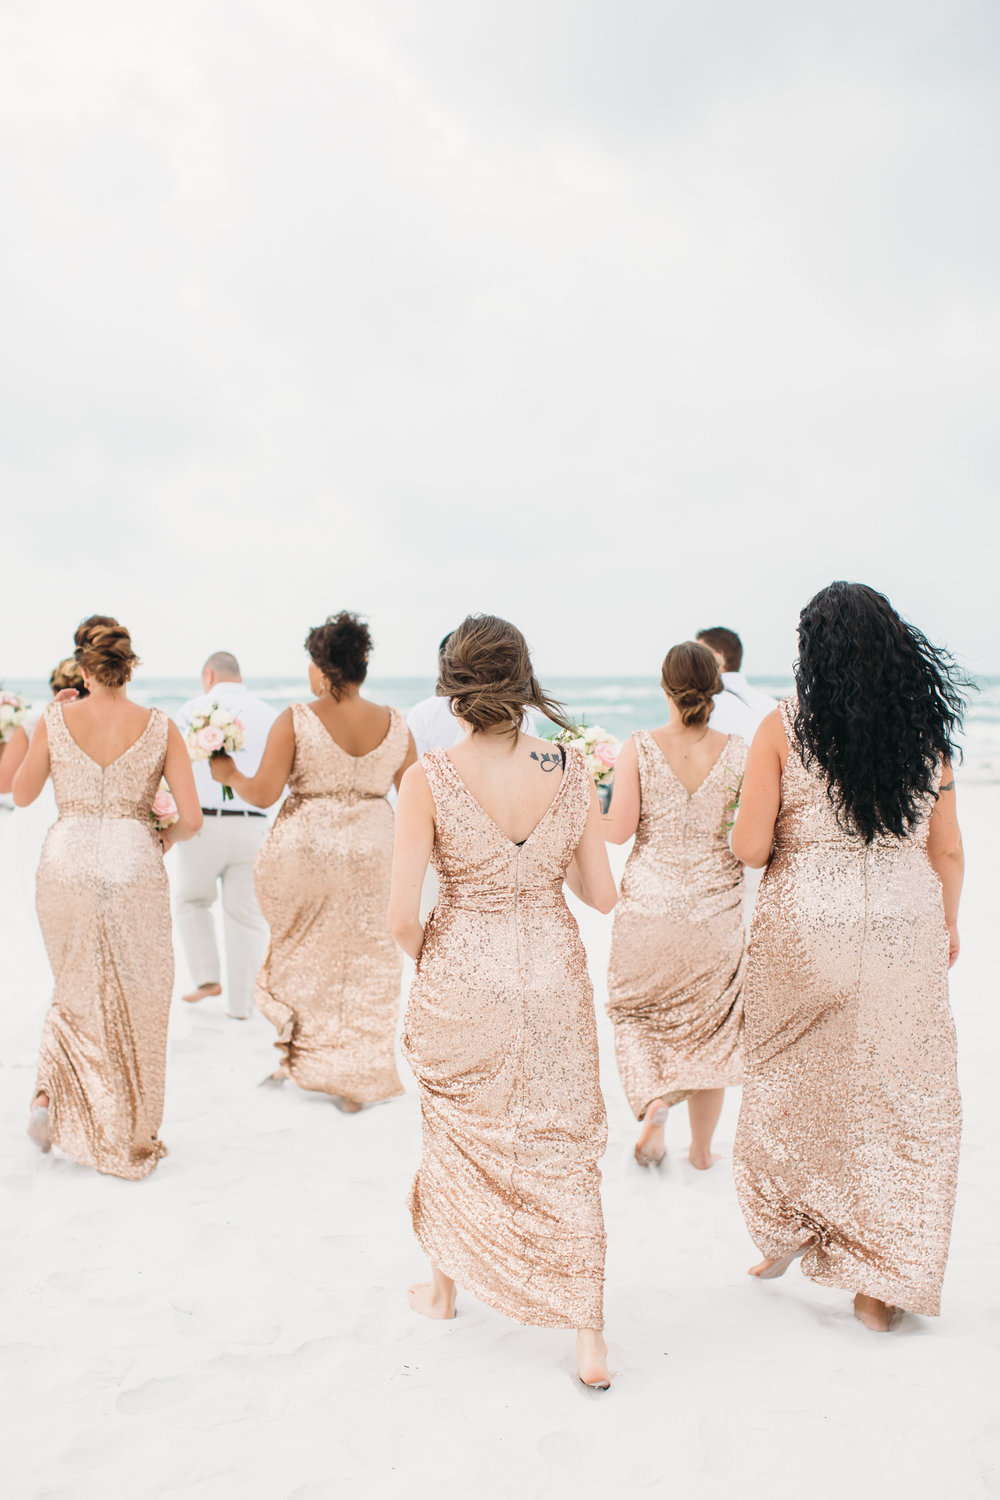 Lido Key Florida Beach wedding